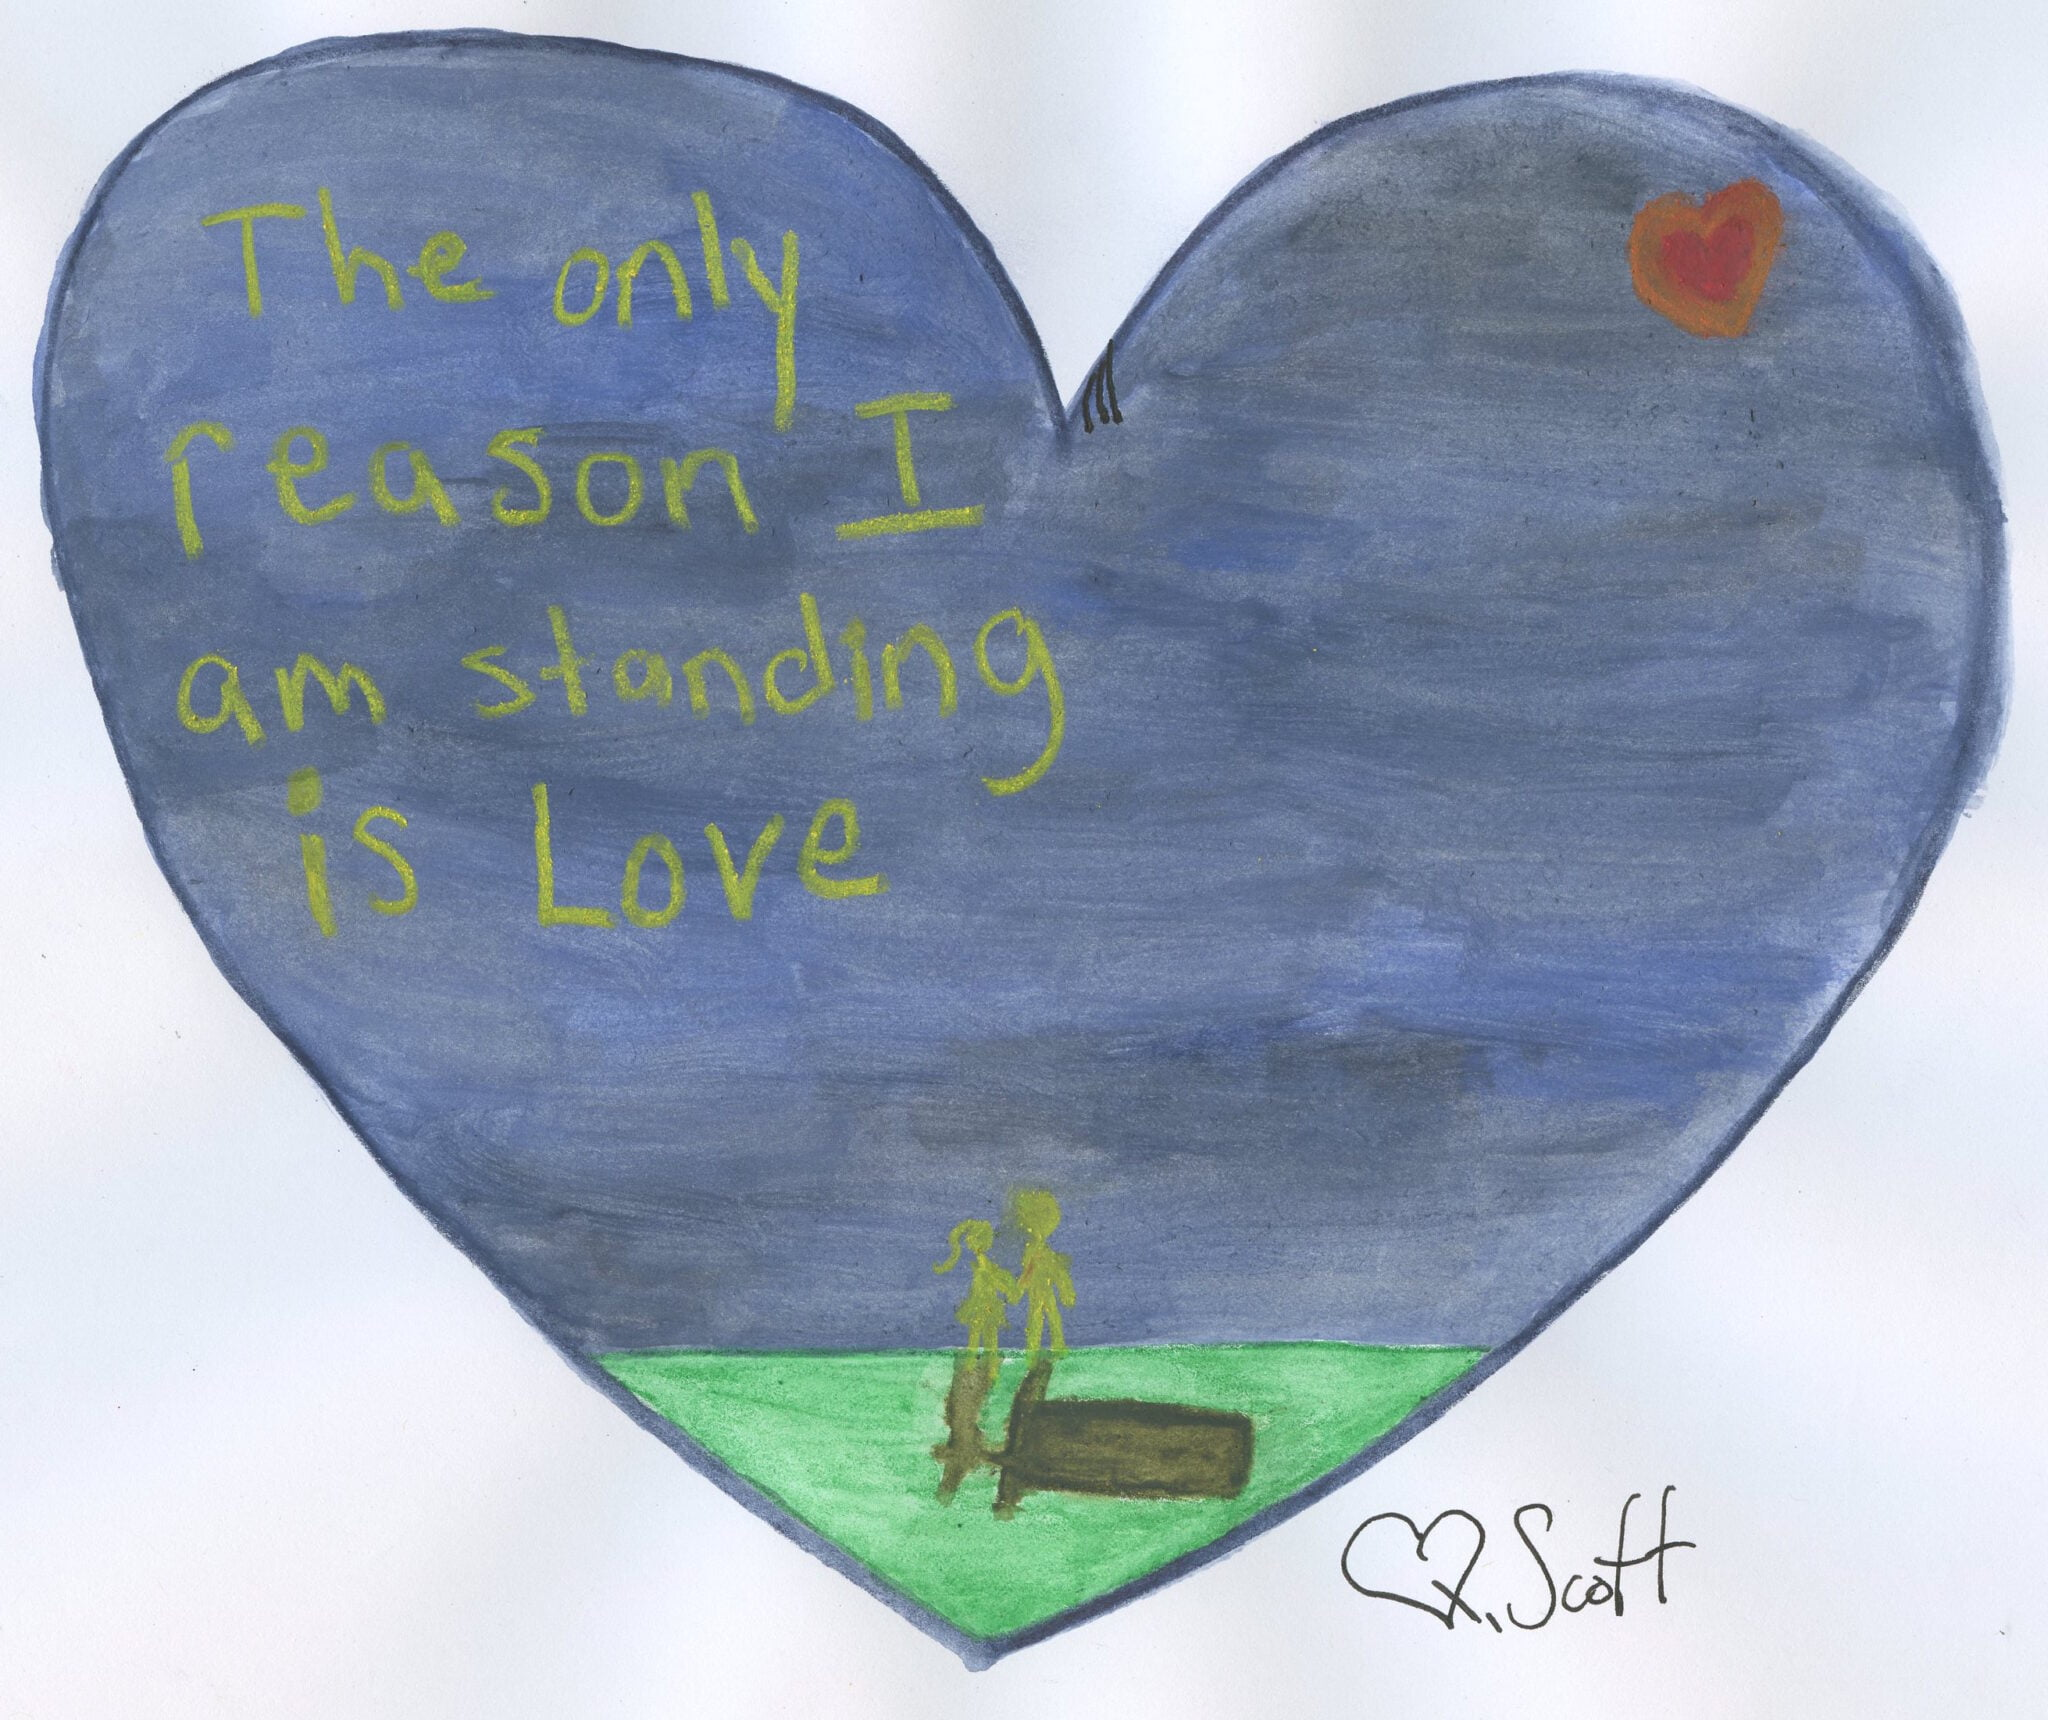 The only reason I am standing is love.